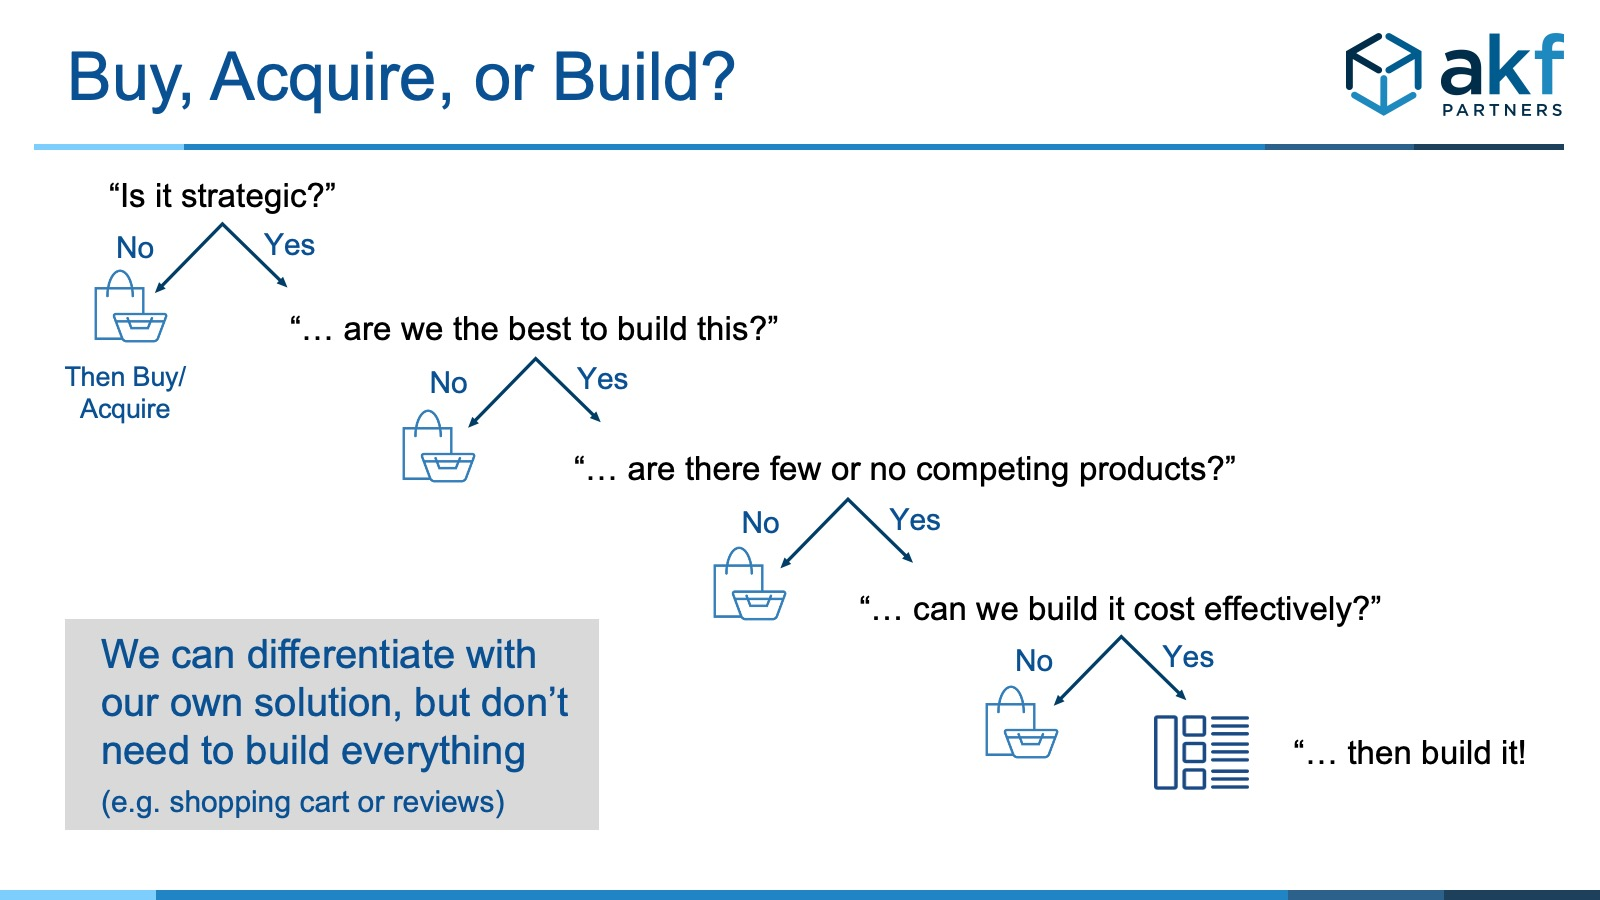 We can differentiate with our own solution, but don't need to build everything <br /> (e.g. shopping cart or reviews)